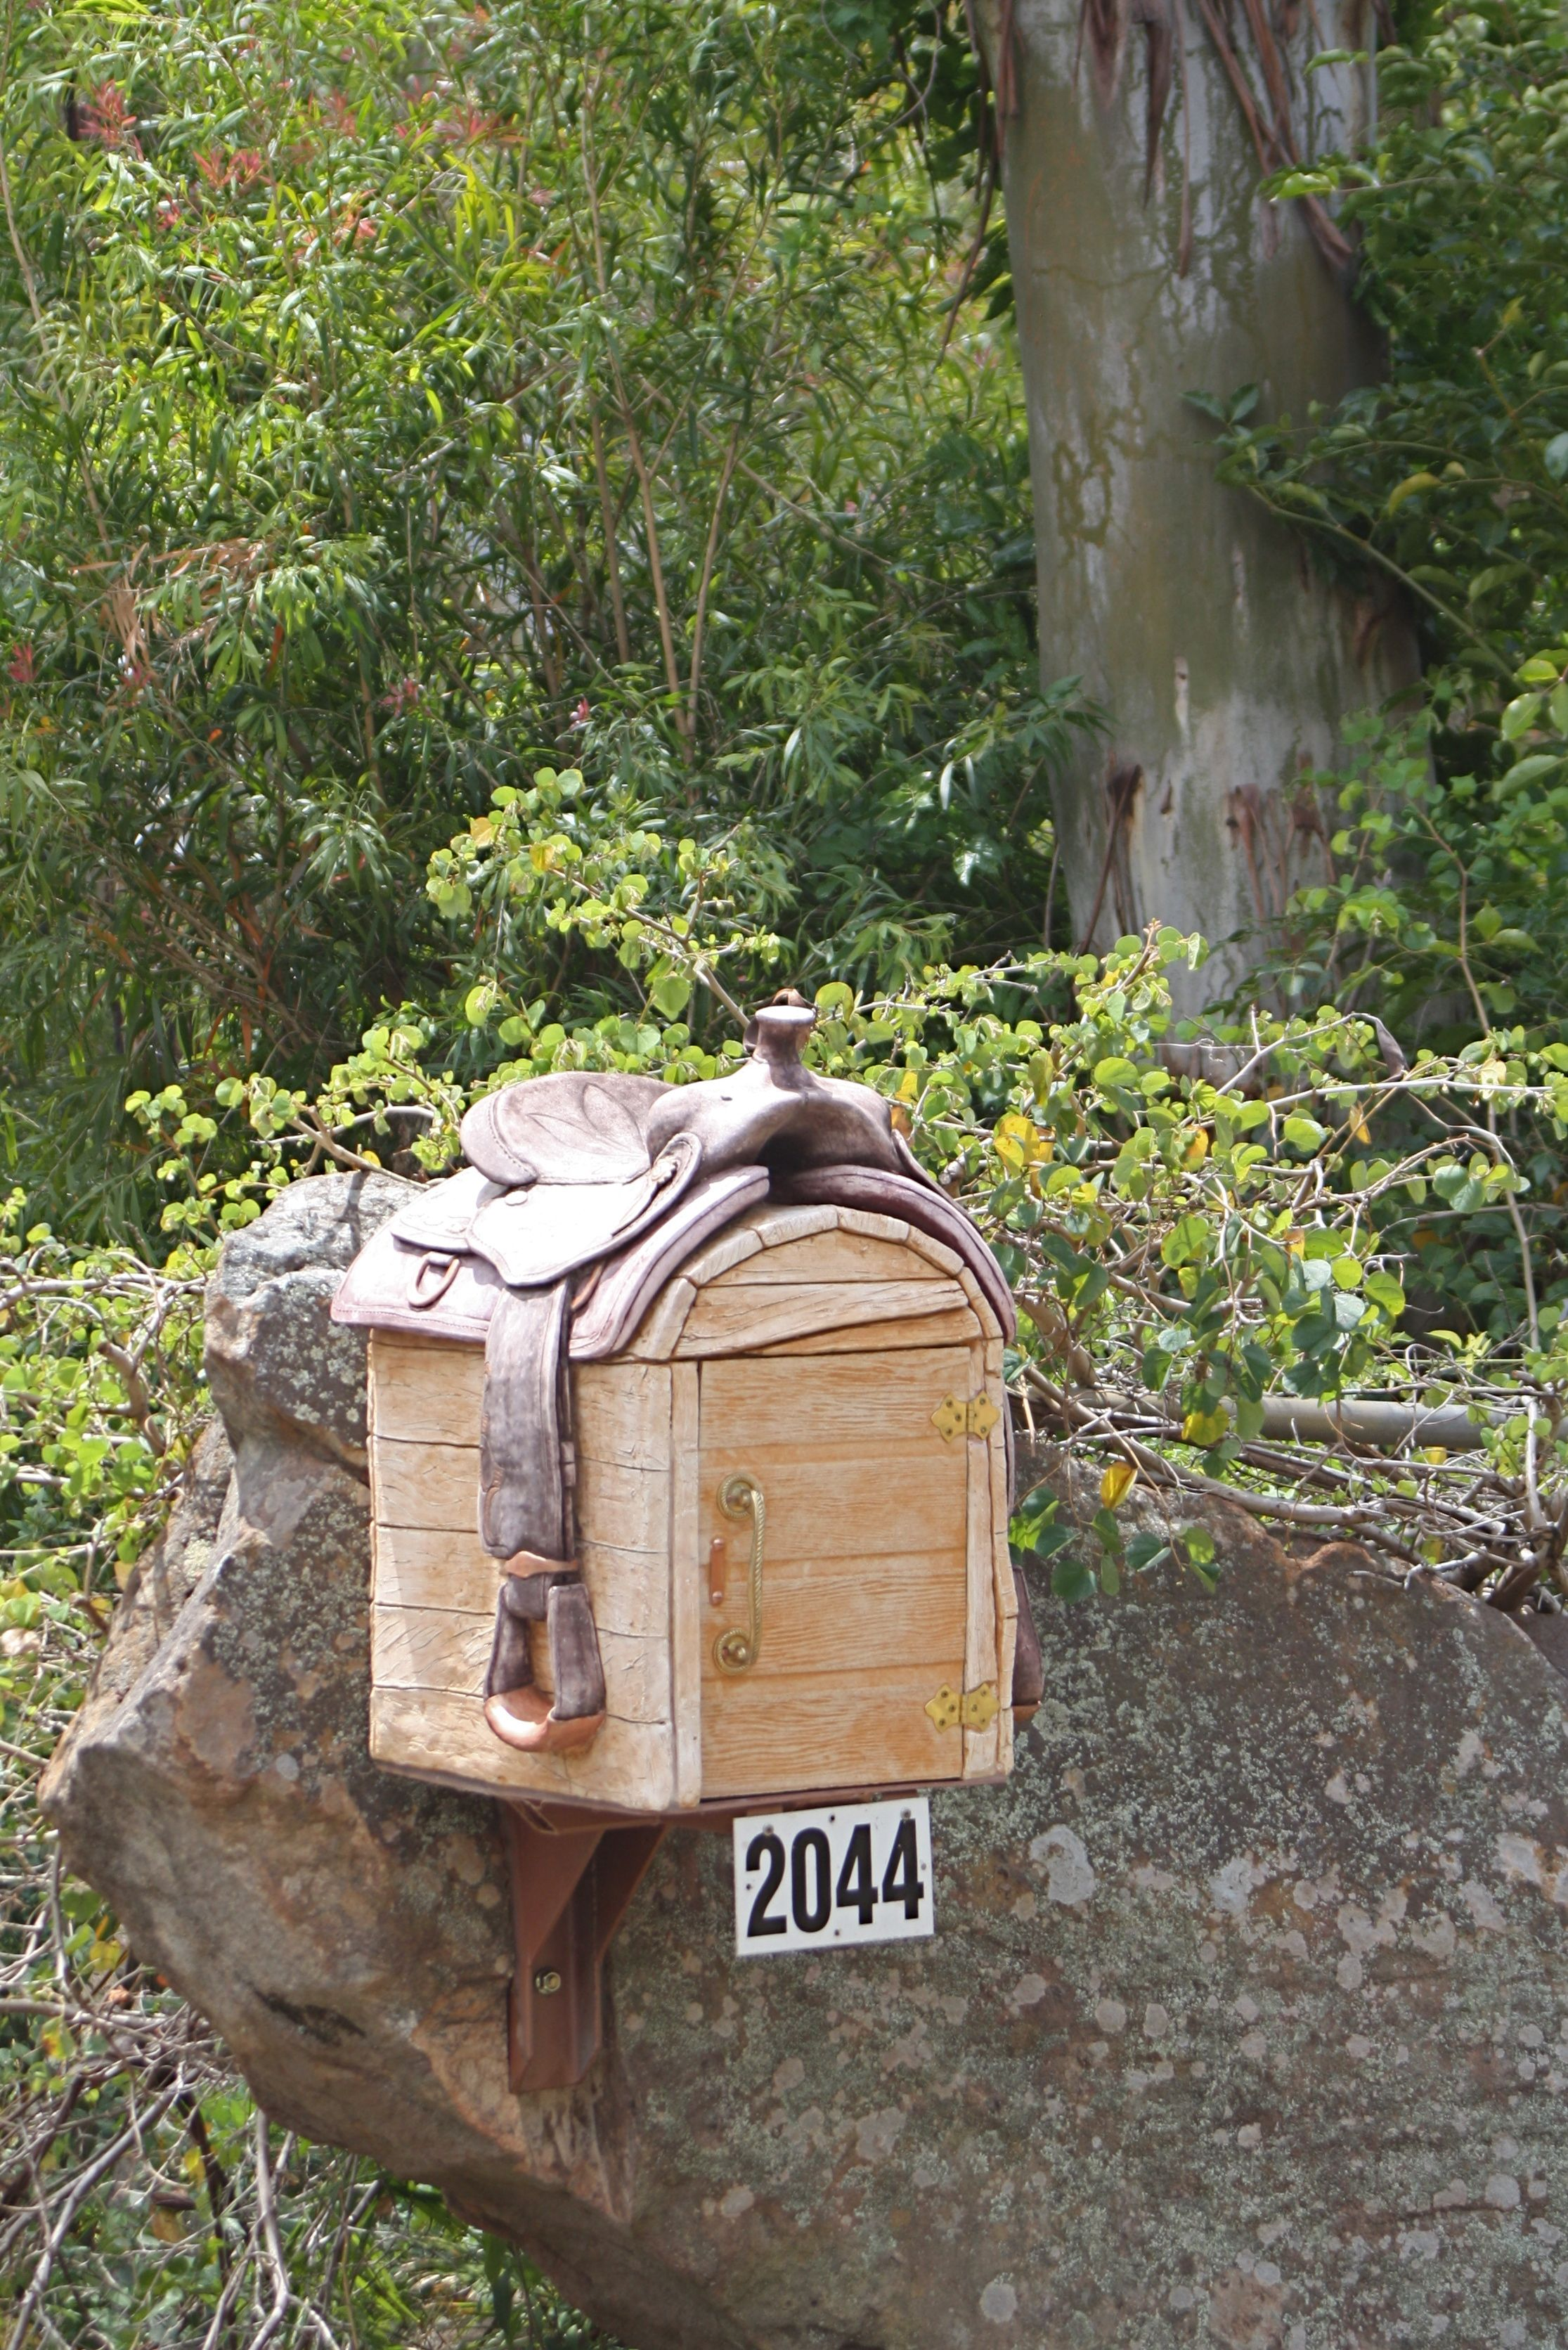 Yee Ha Cool Mailboxes Mailbox Diy Letter Boxes